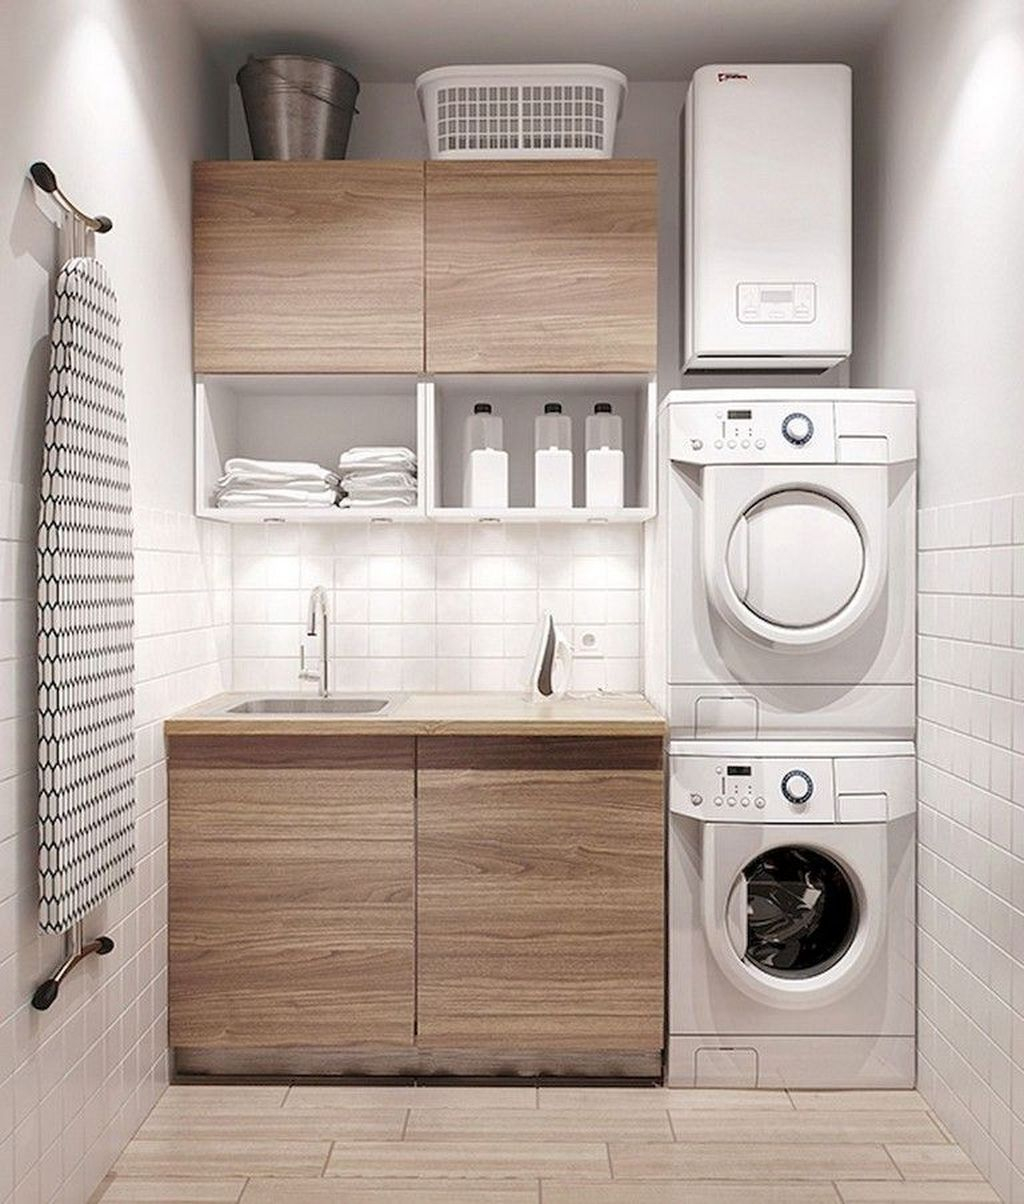 Favored Laundry Room Organization Ideas To Try 13